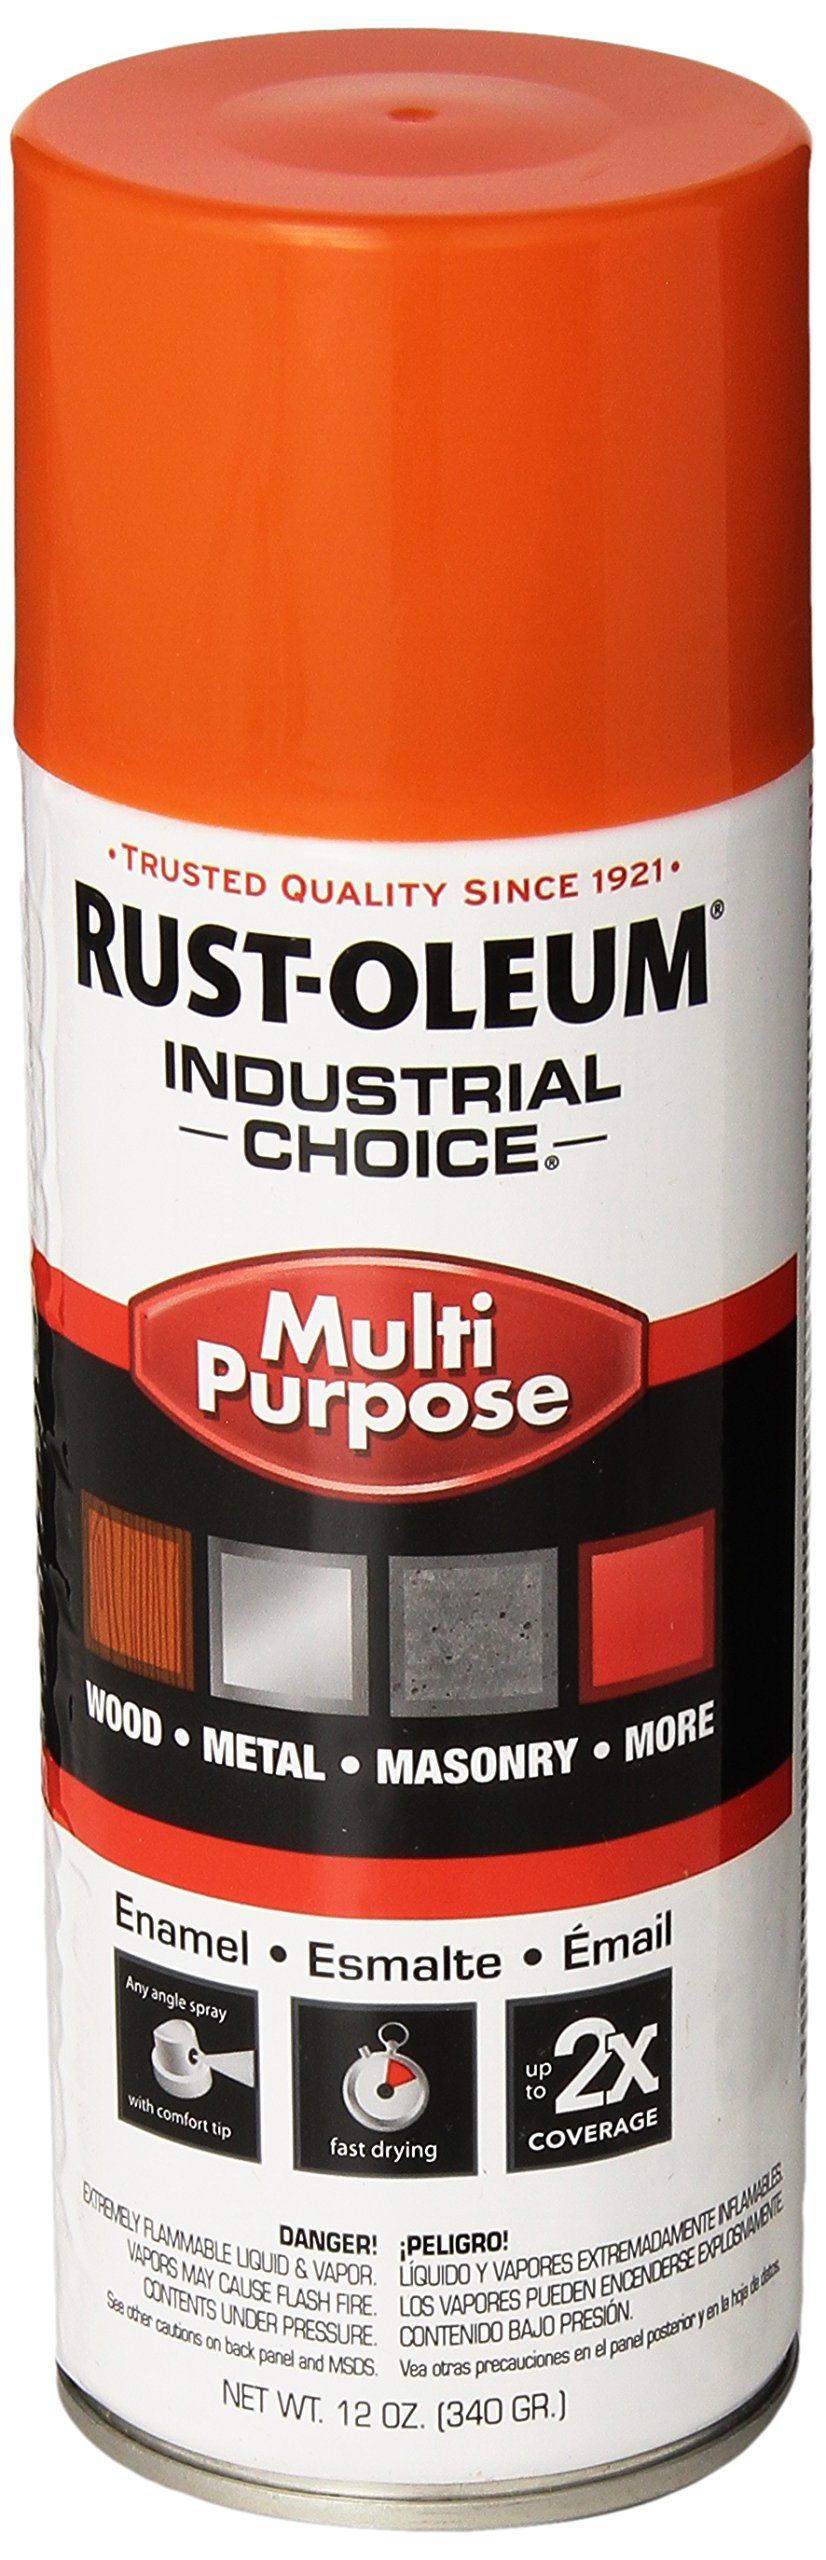 Rust-Oleum 1653830 Safety Orange 1600 System General Purpose Enamel Spray Paint,16 fl. oz. container, 12 oz. weight fill, Can (Pack of 6)